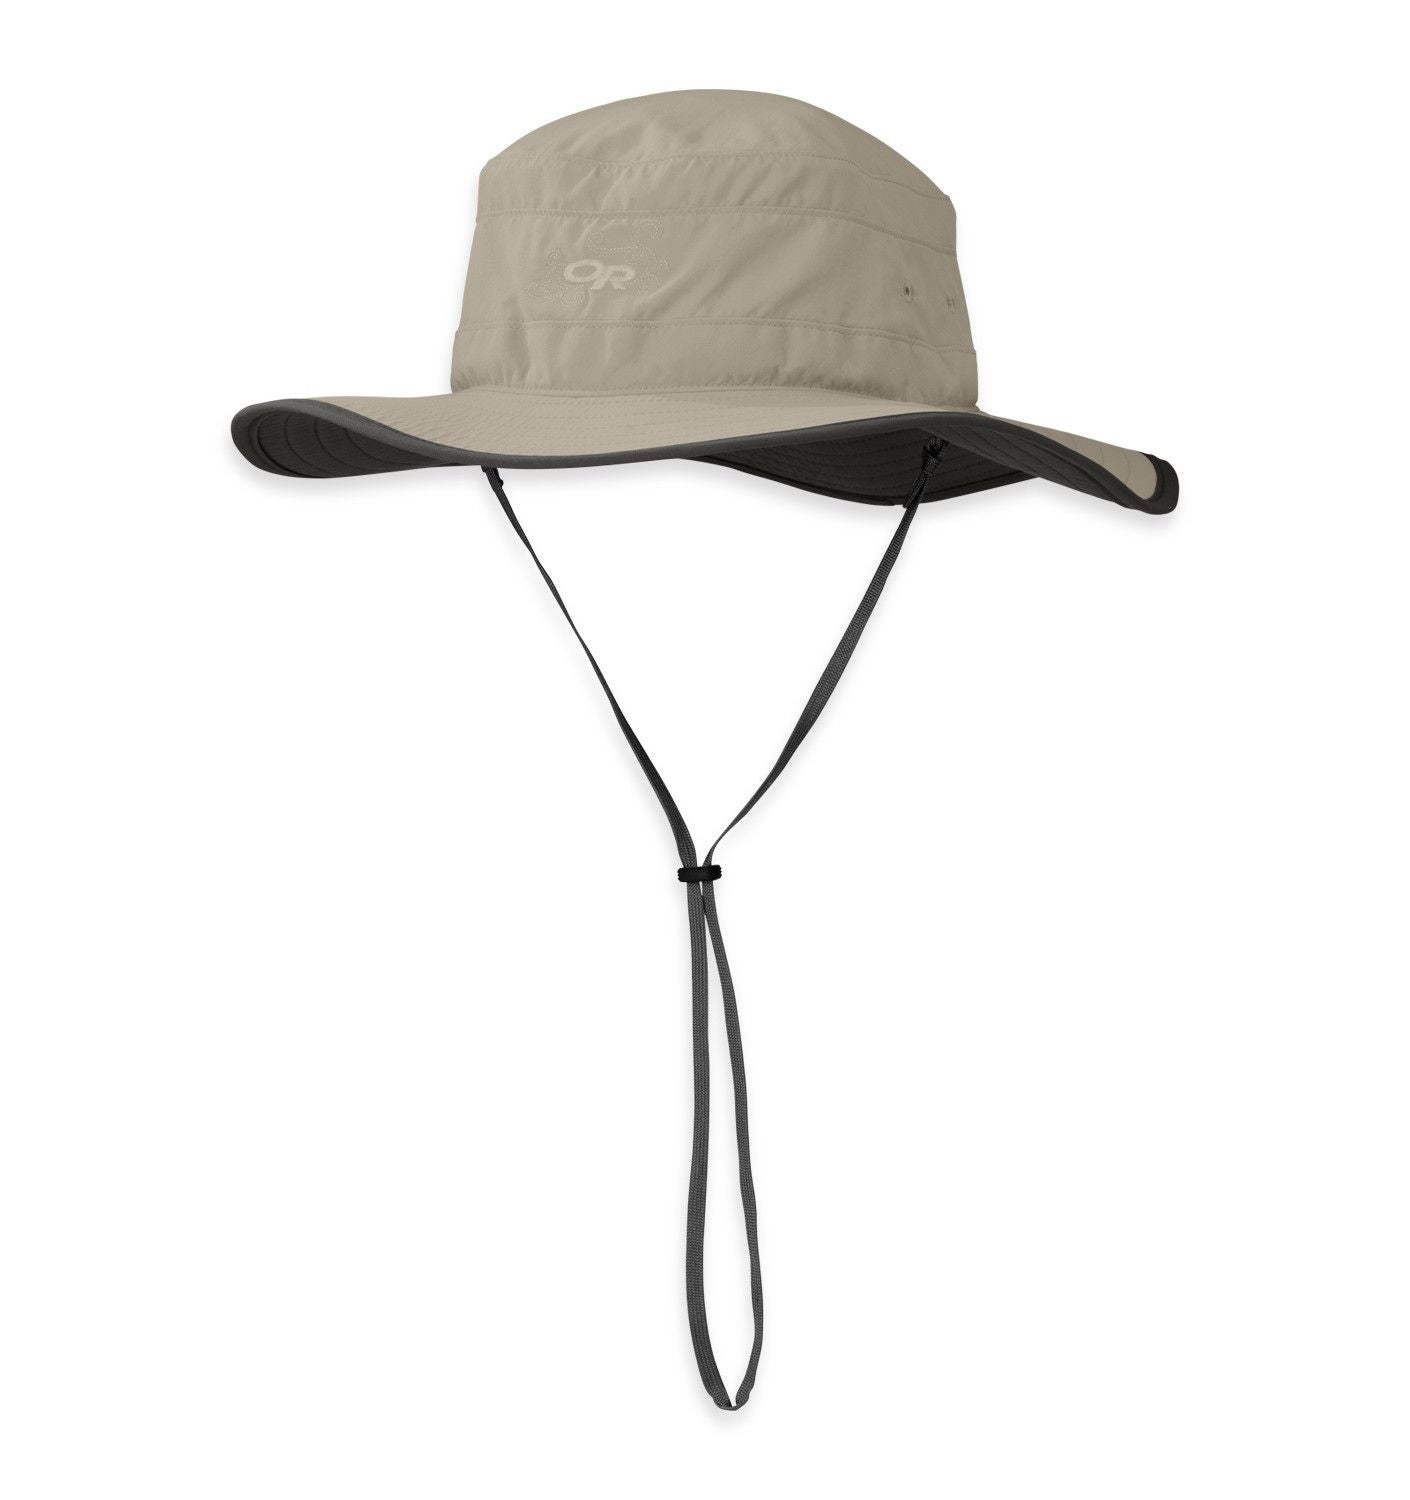 2c9a5cfb85688 Outdoor Research Womens Solar Roller Hat - Floating brim